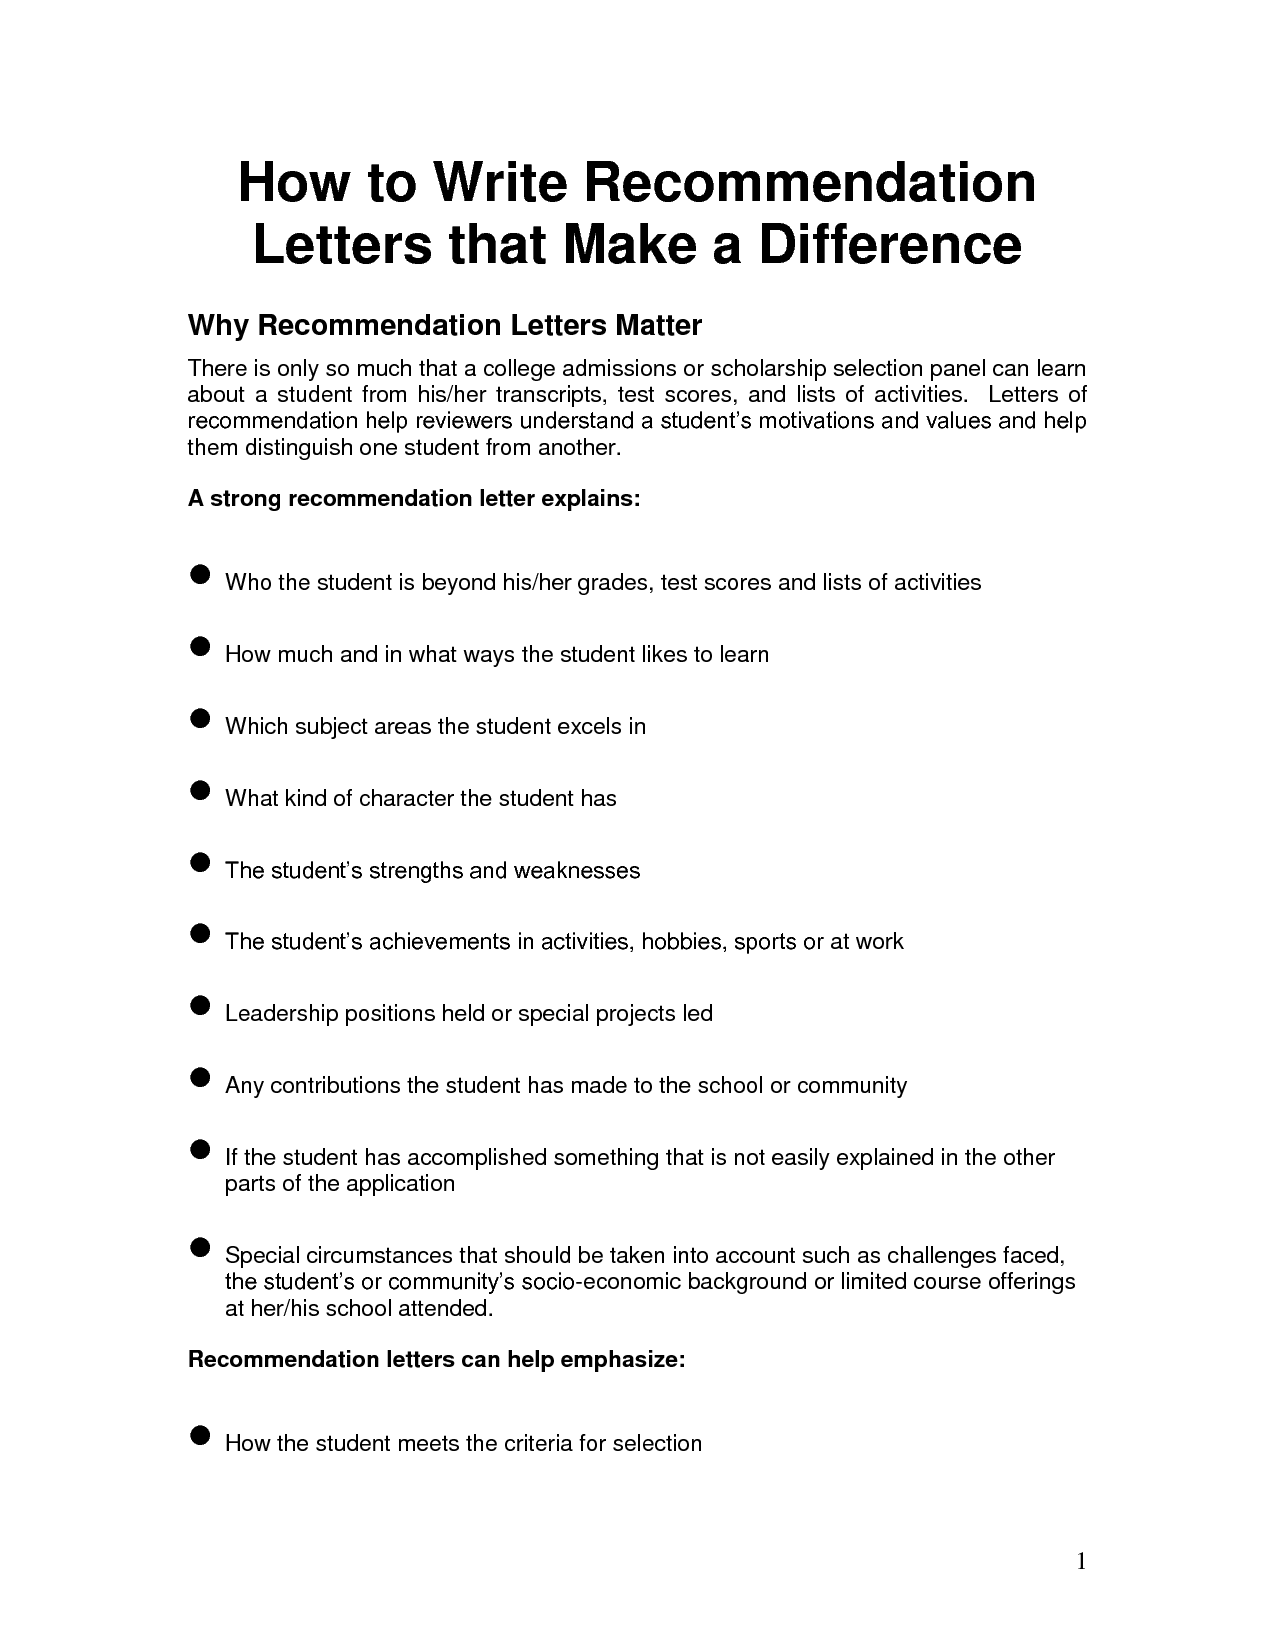 Letter of recommendation examples and writing tips employee writing recommendation letters for students writing letterswriting a letter of recommendation business letter sample mitanshu Gallery